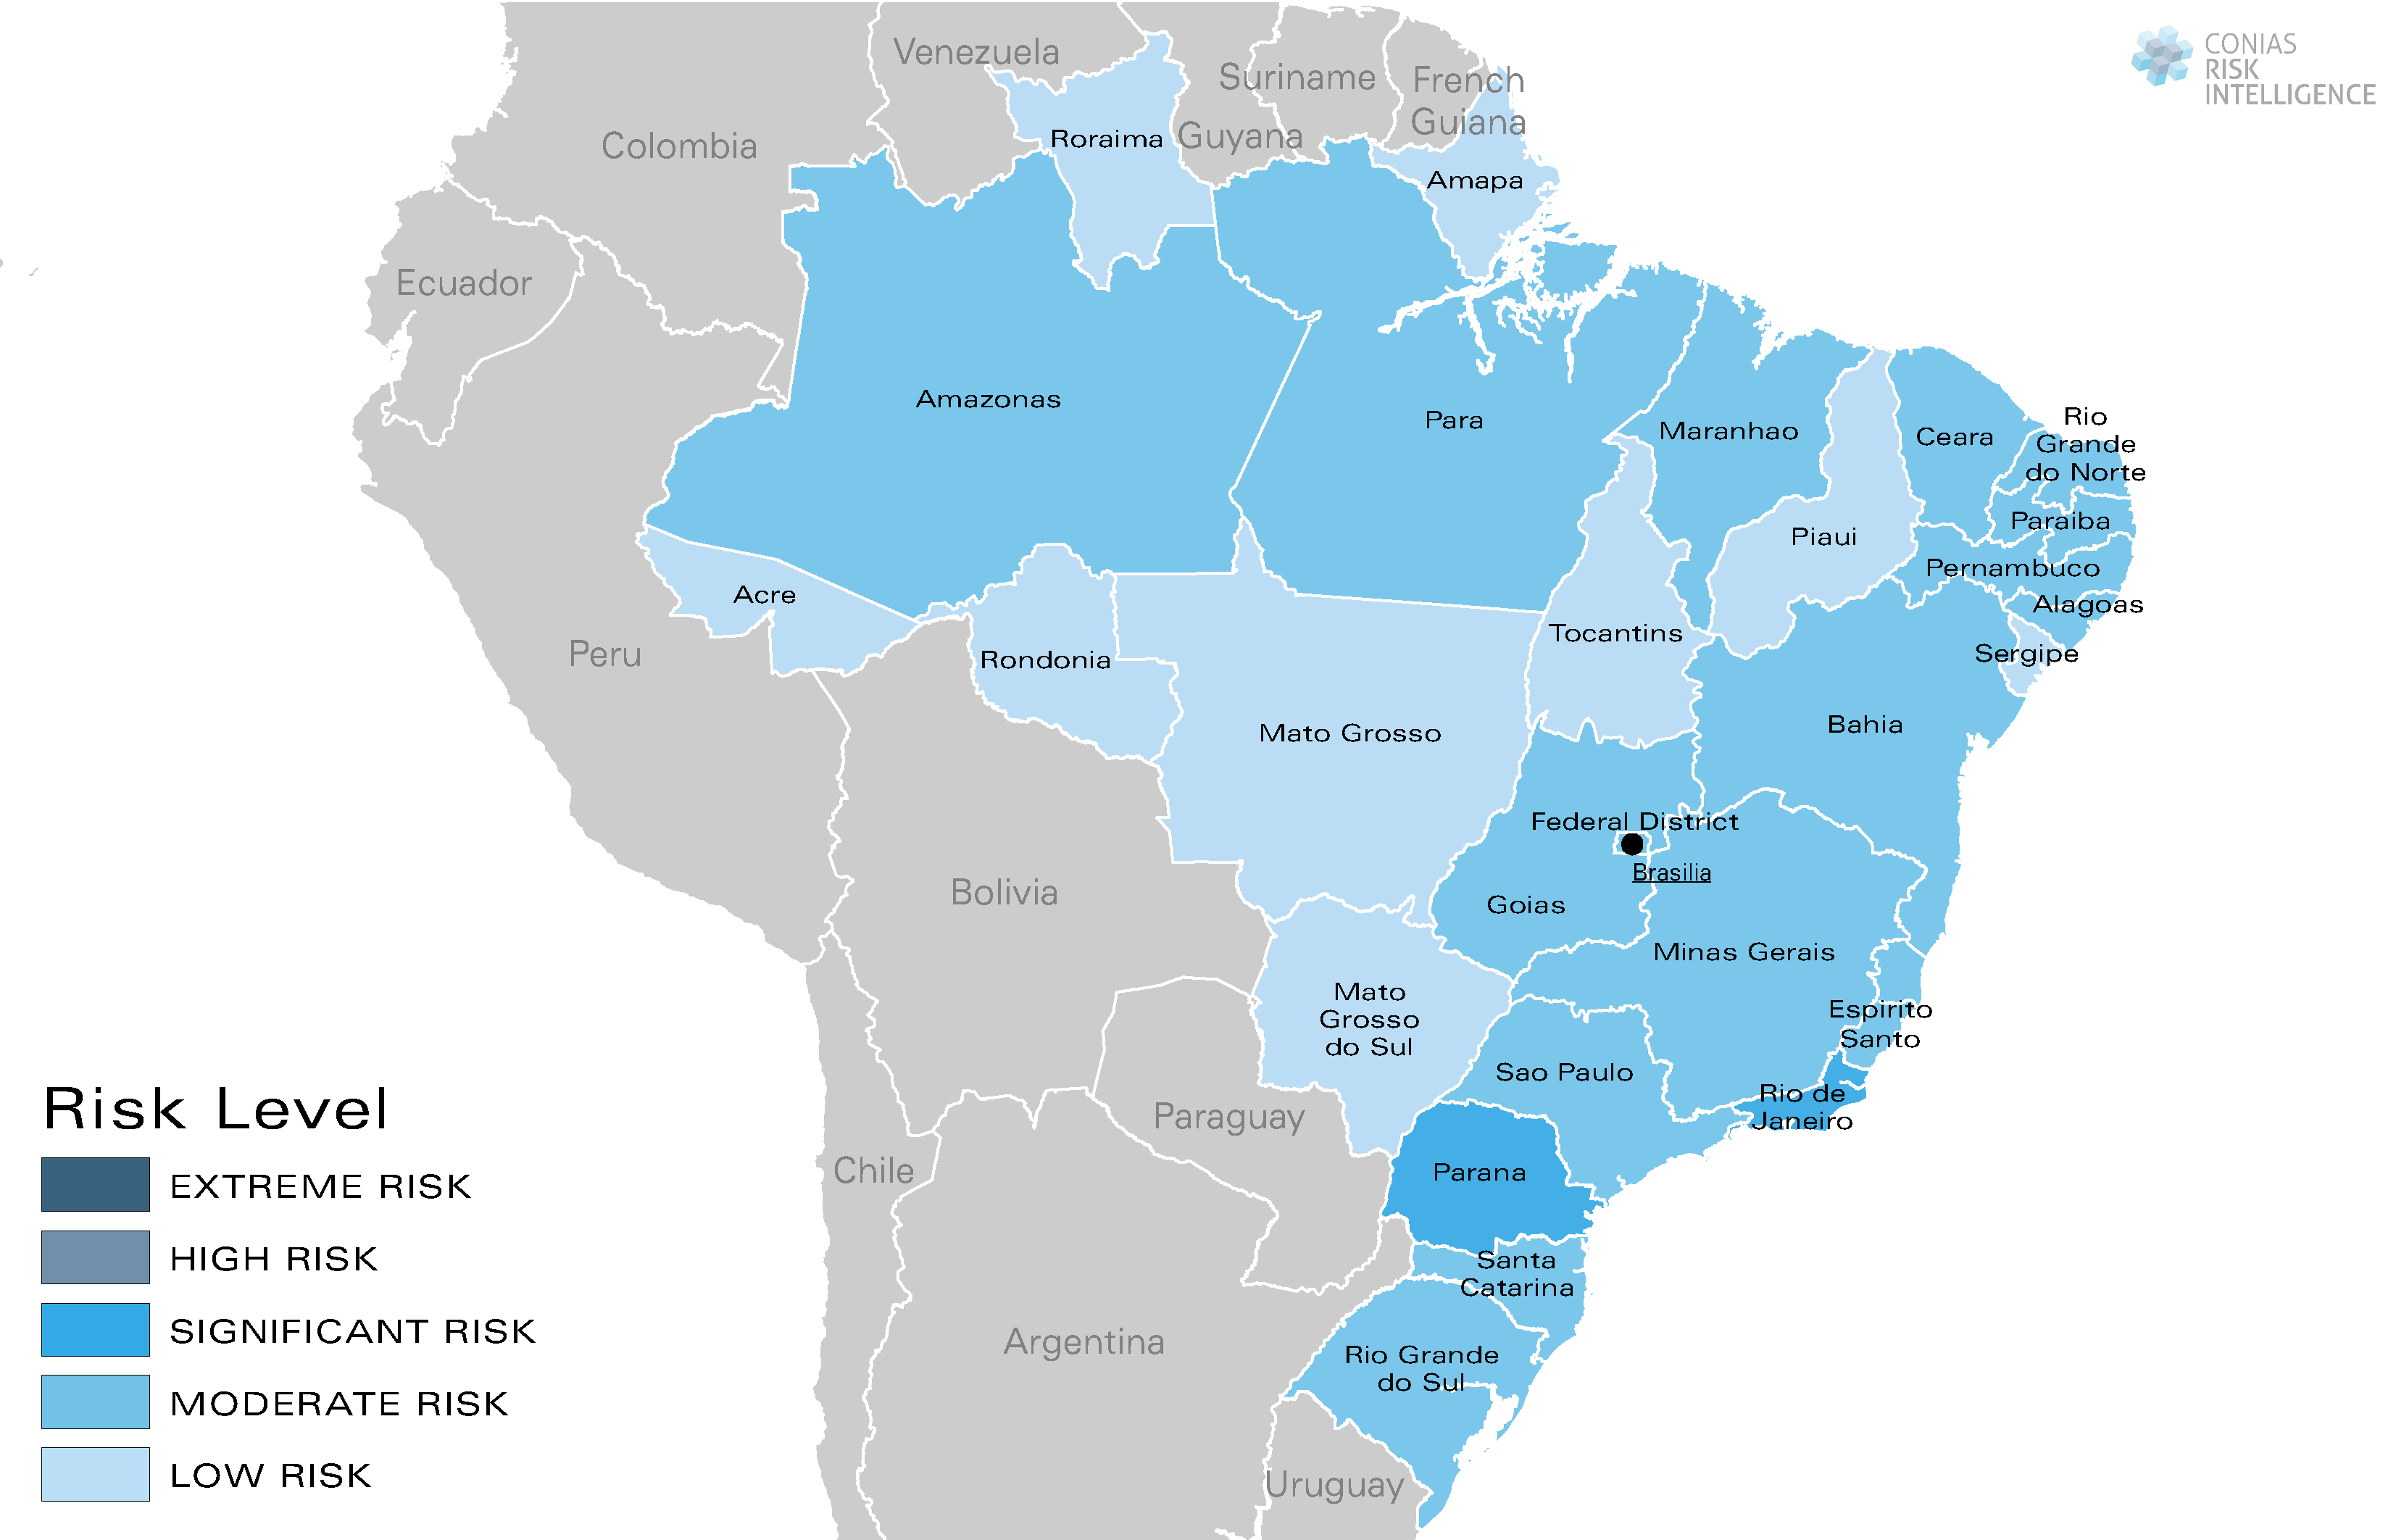 CONIAS Political Risk Map Brazil